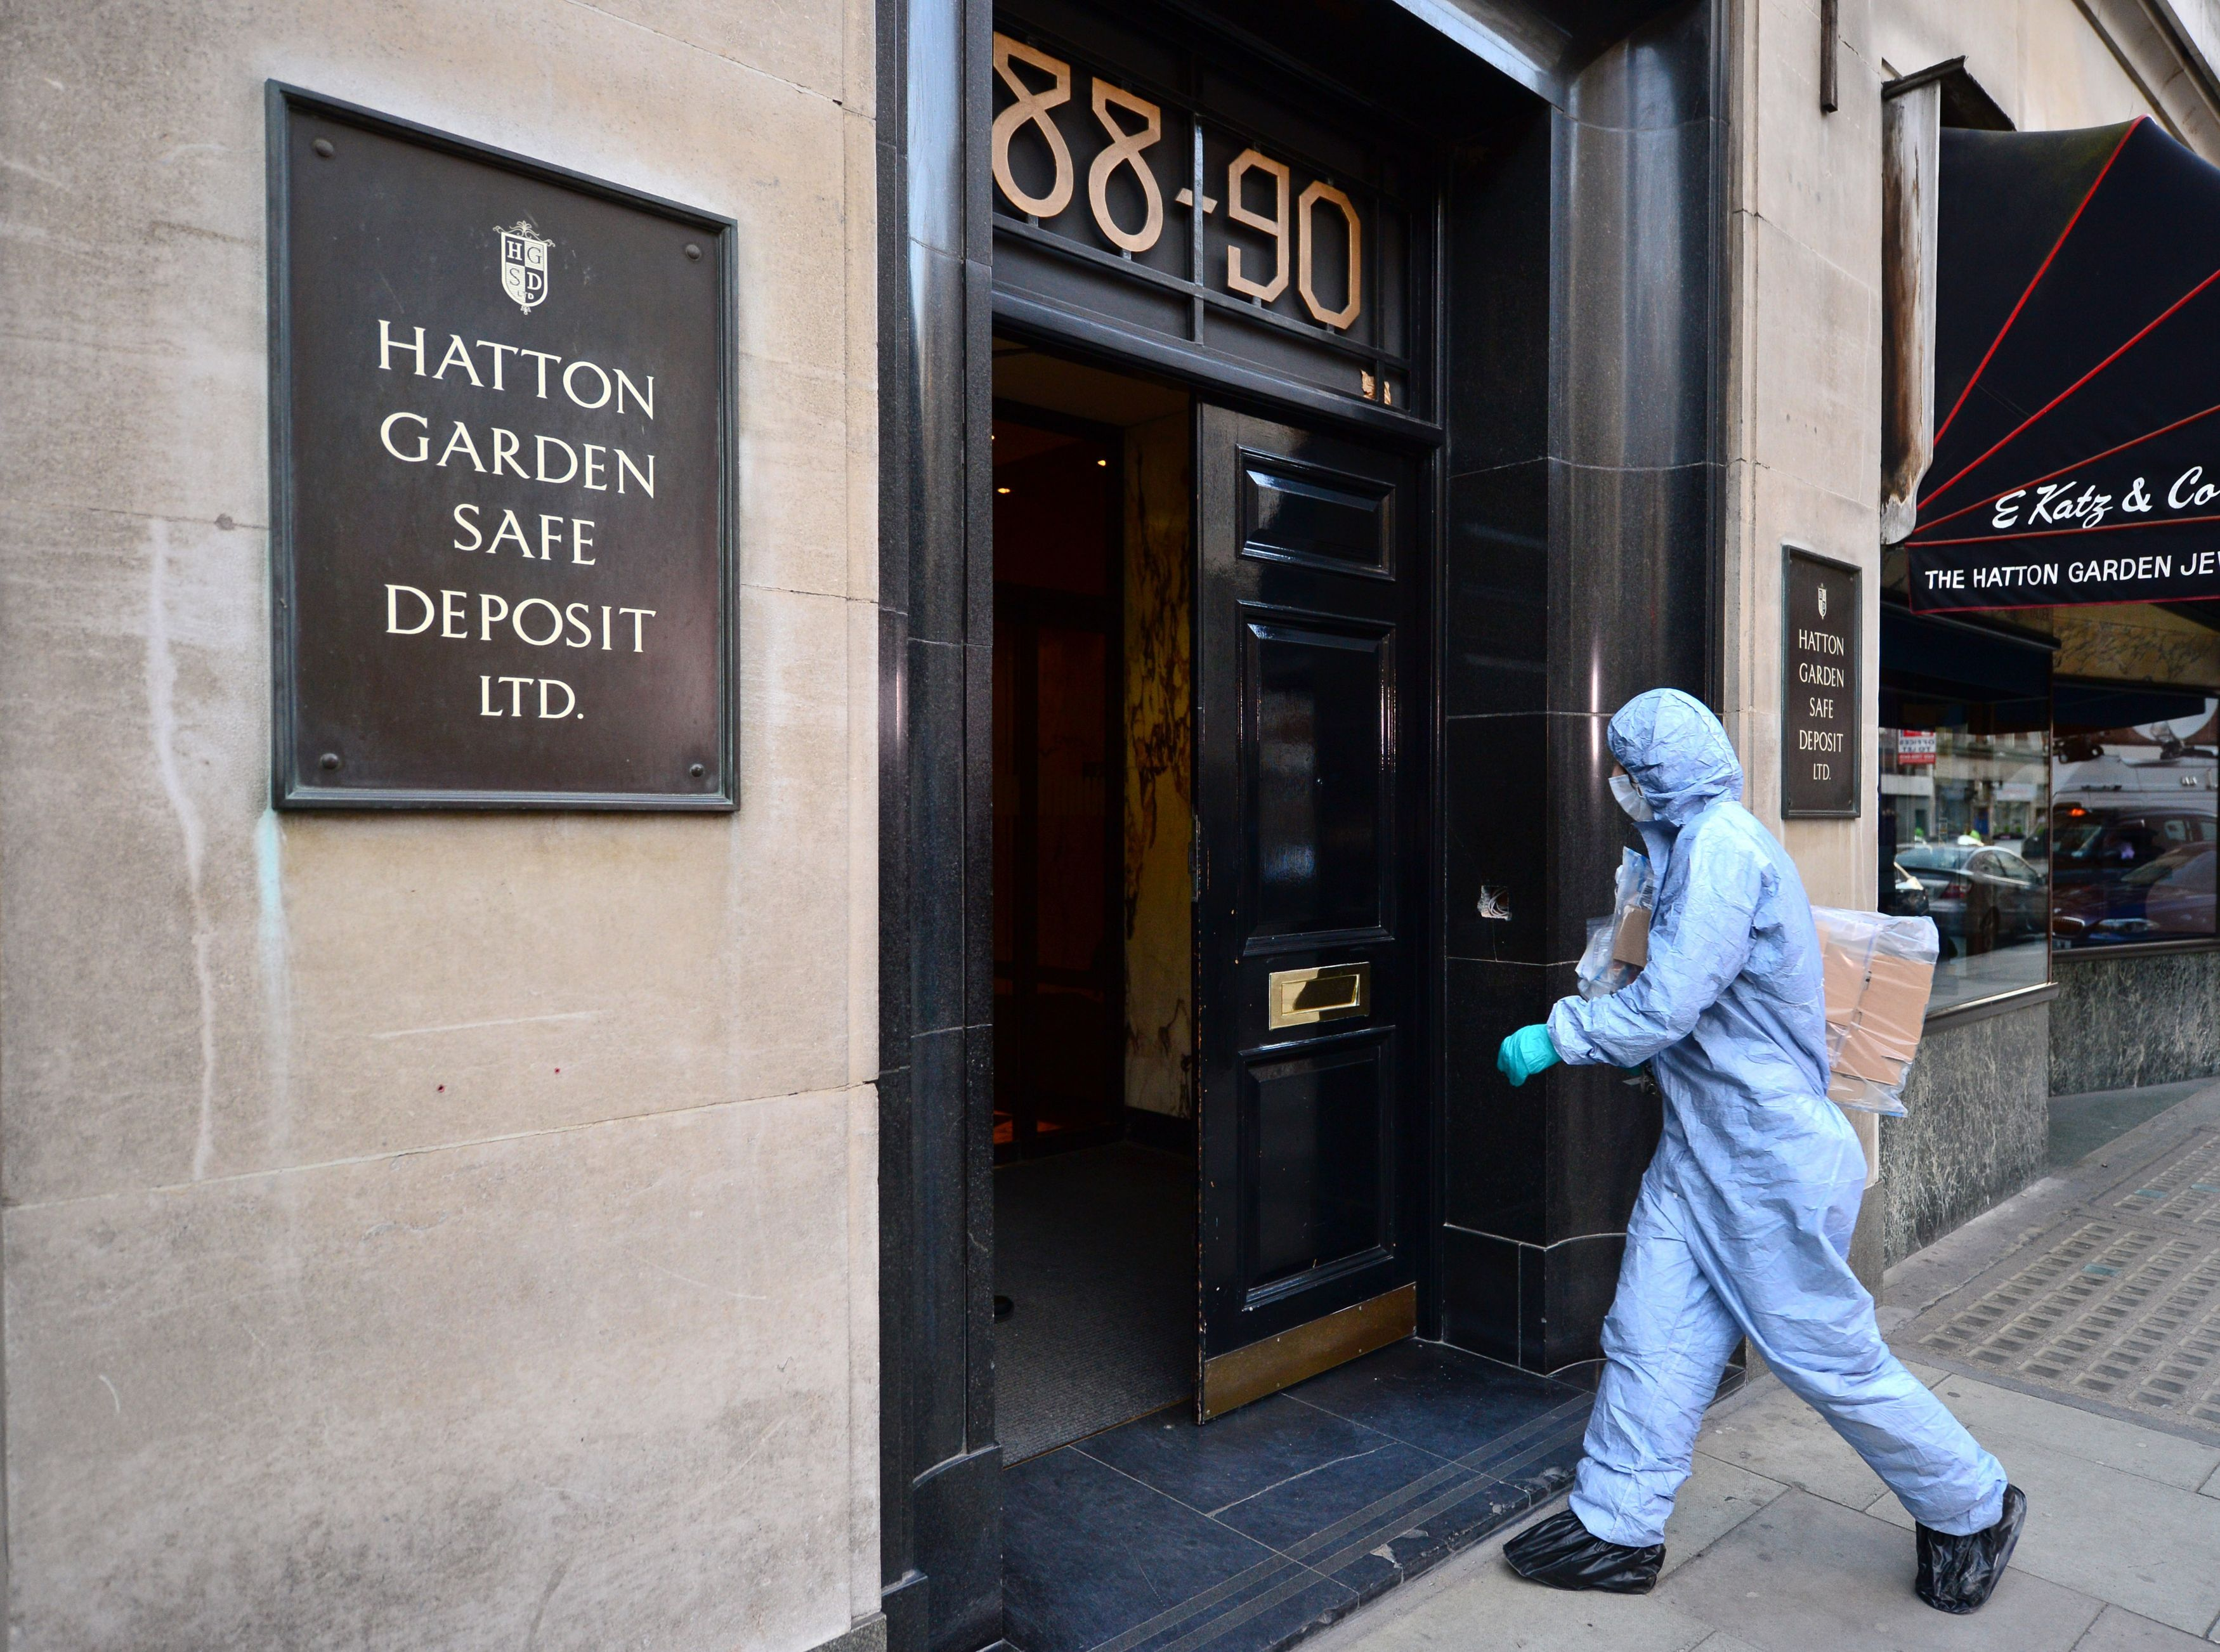 A police forensics officer enters Hatton Garden Safe Deposit Ltd. in London on April 7, 2015, after it was burgled over the weekend